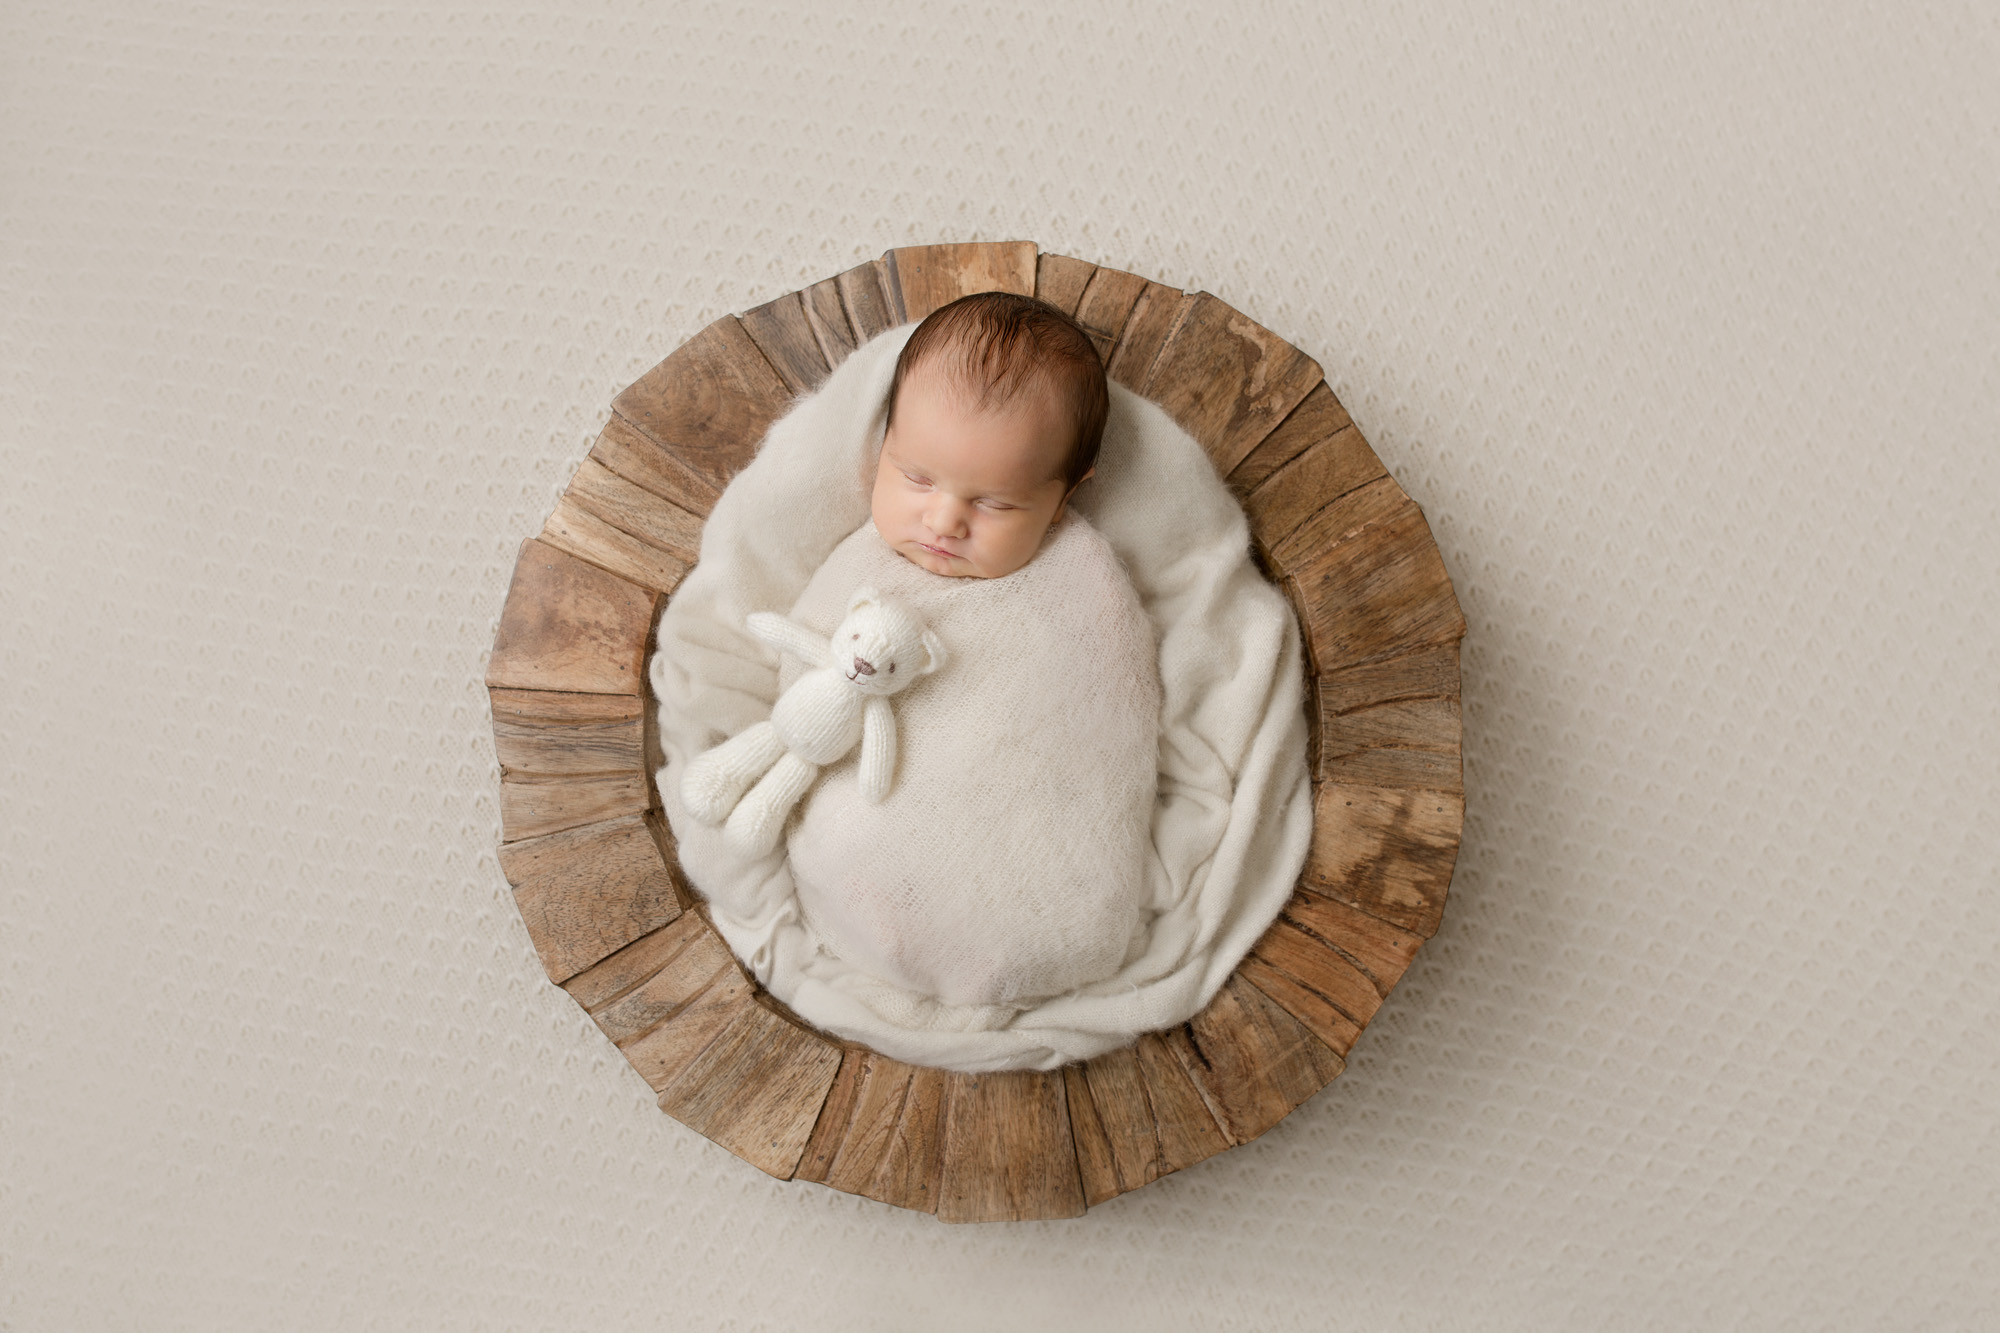 newborn baby girl in bowl